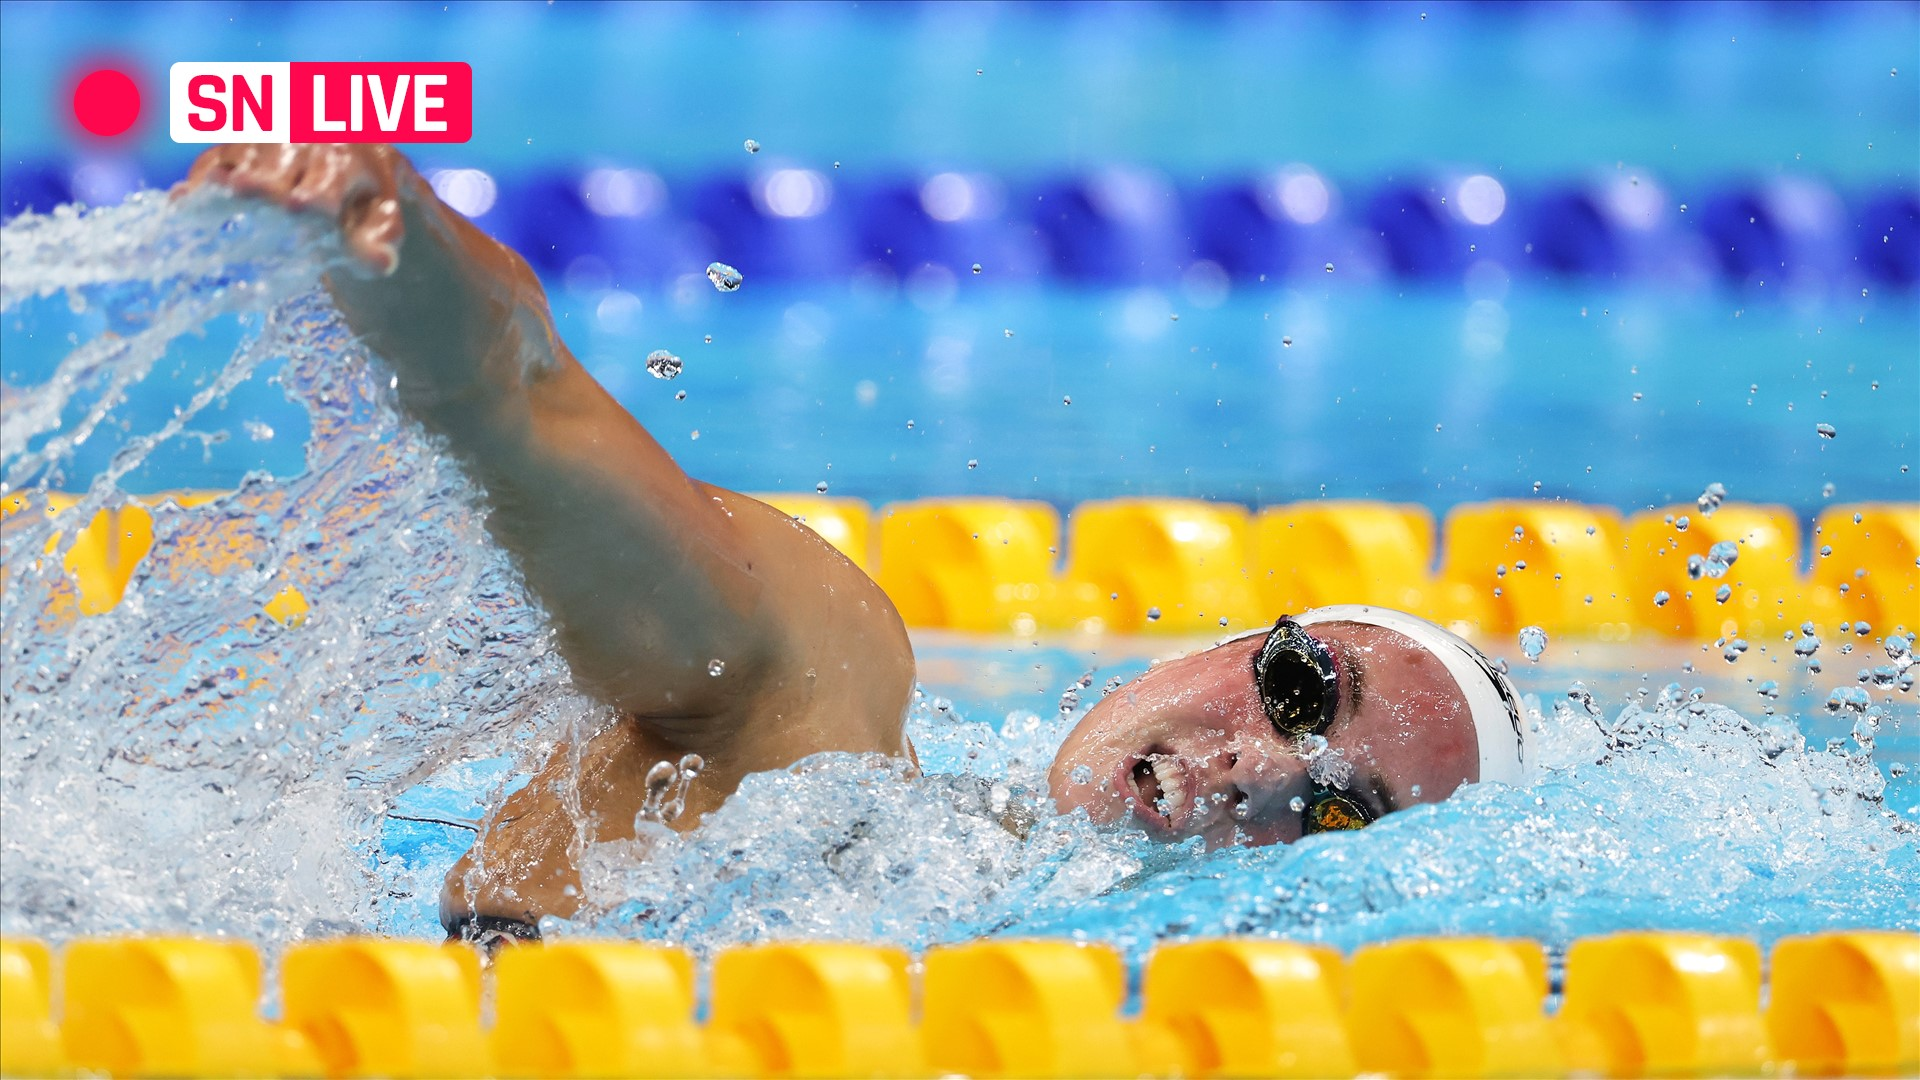 Olympic Swimming Live Scores, Updates and Highlights from Day 1 at the Tokyo 2021 Games